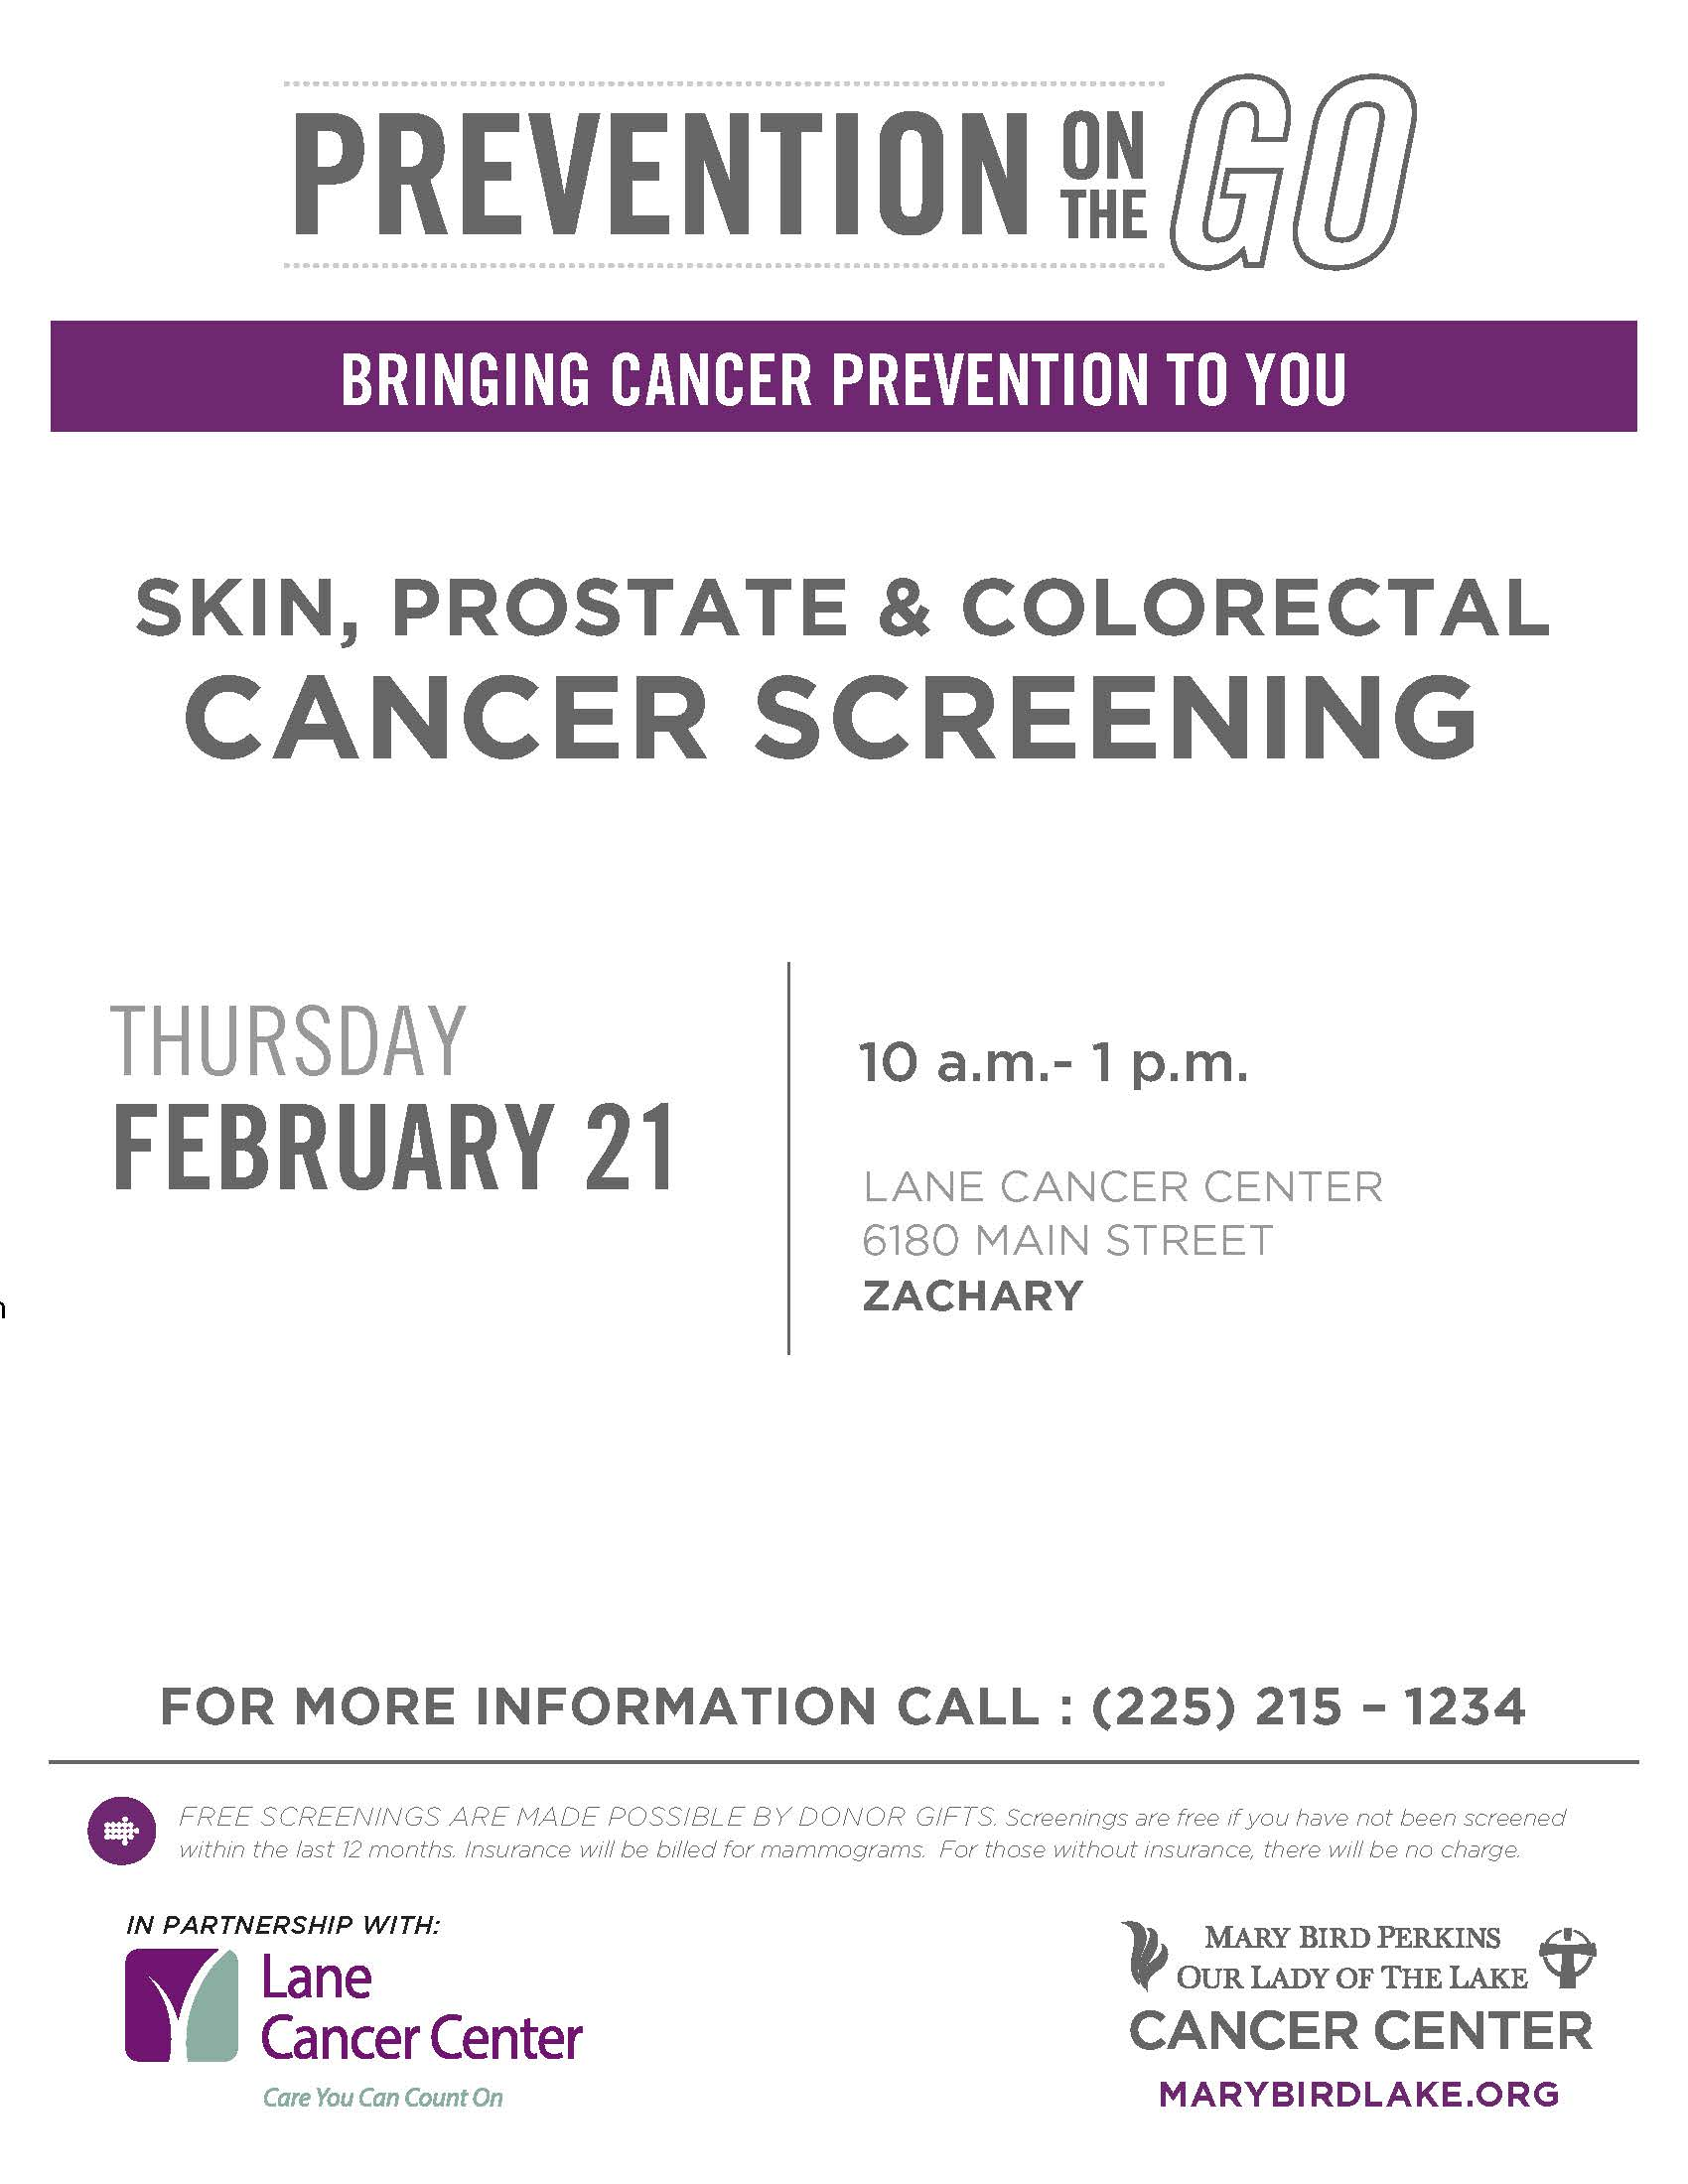 Free Cancer Screenings at Lane Cancer Center